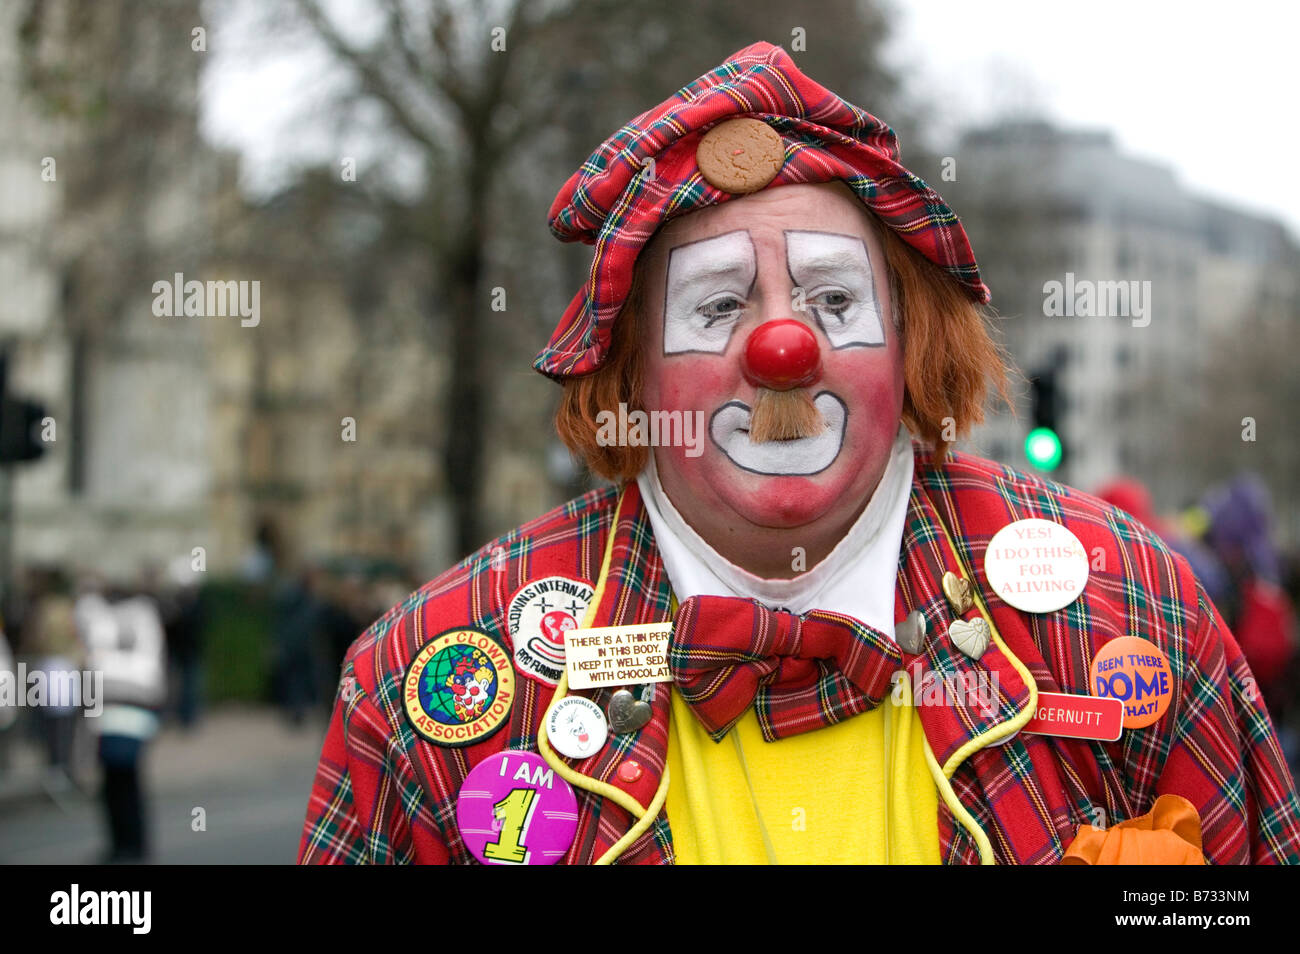 Colourful clown at the London Parade, a New Year's Day Parade in Central London - Stock Image